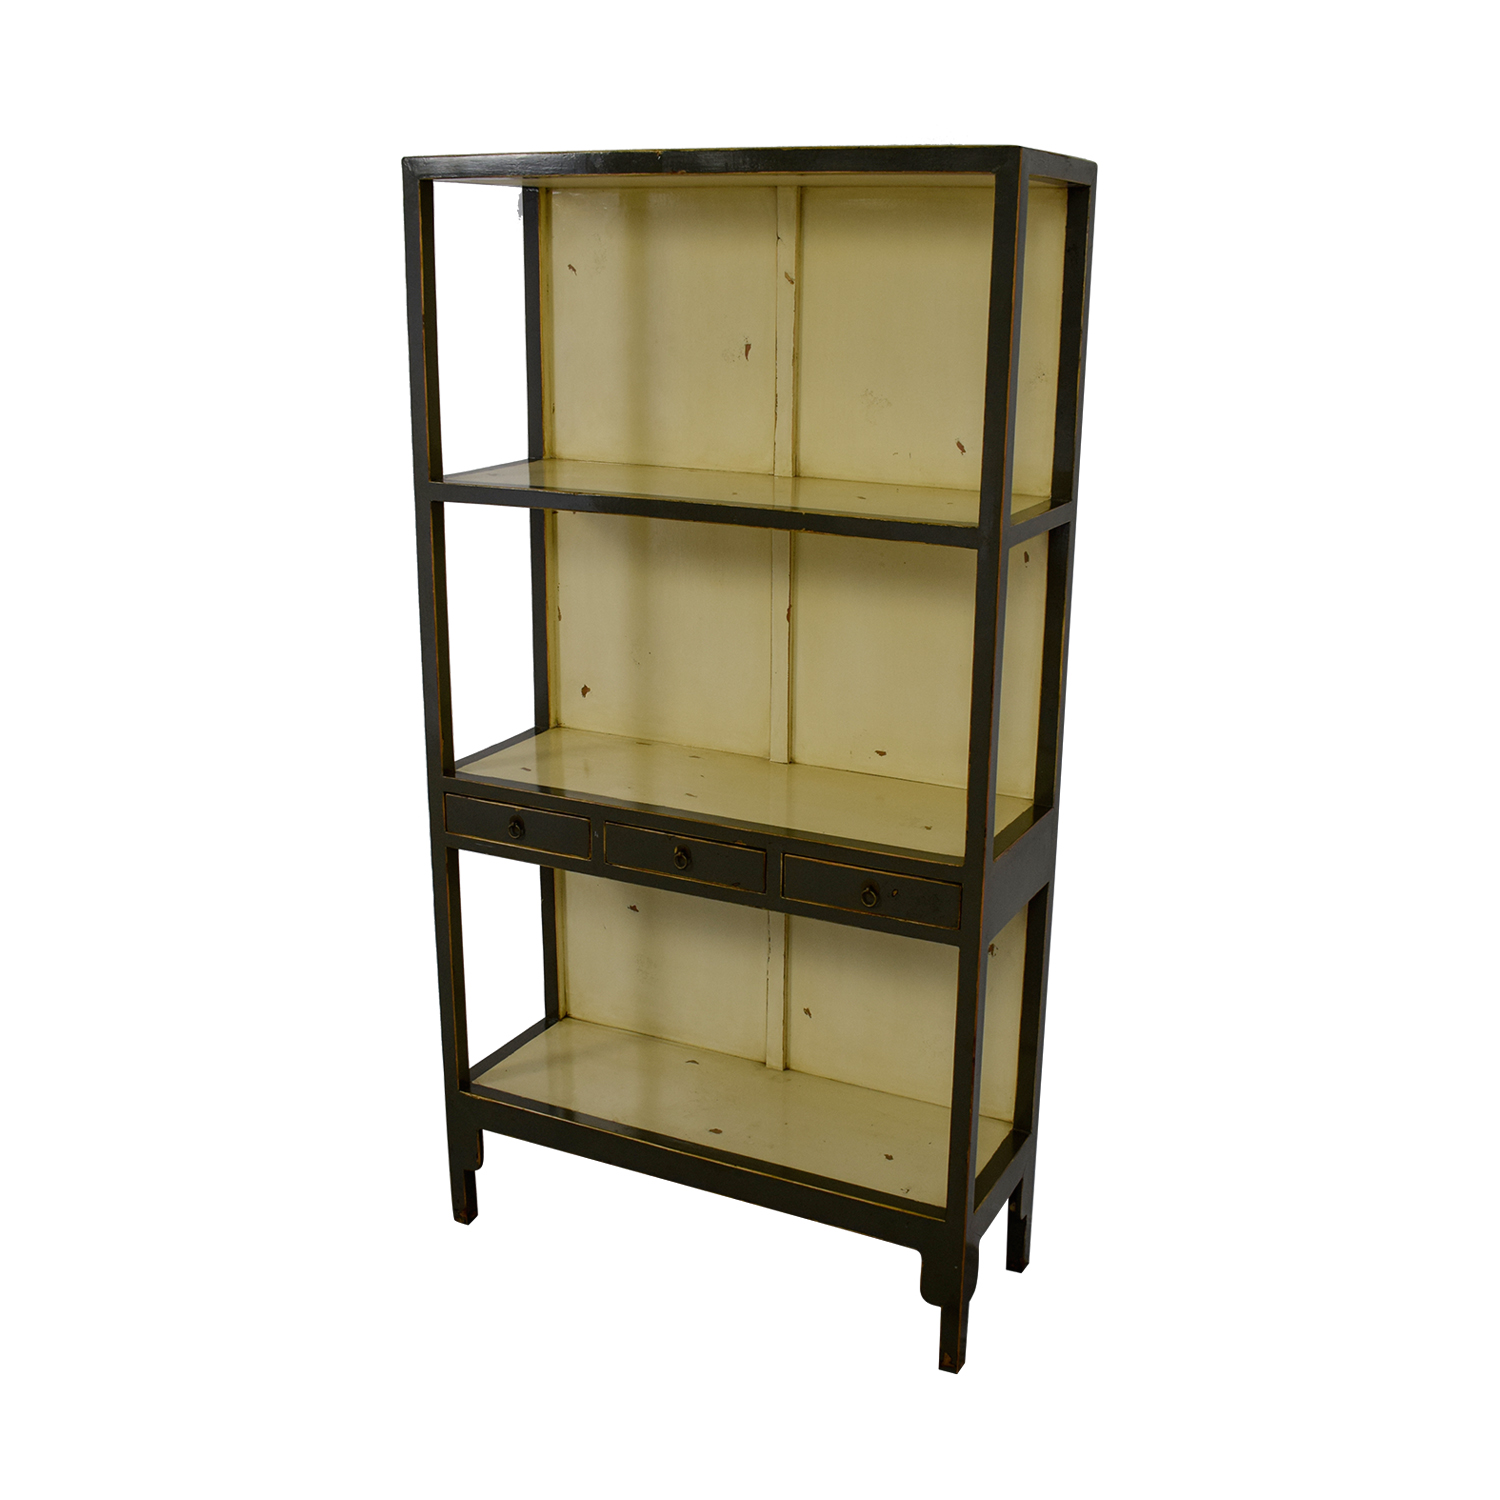 Horchow Distressed Decorative Shelving / Bookcases & Shelving